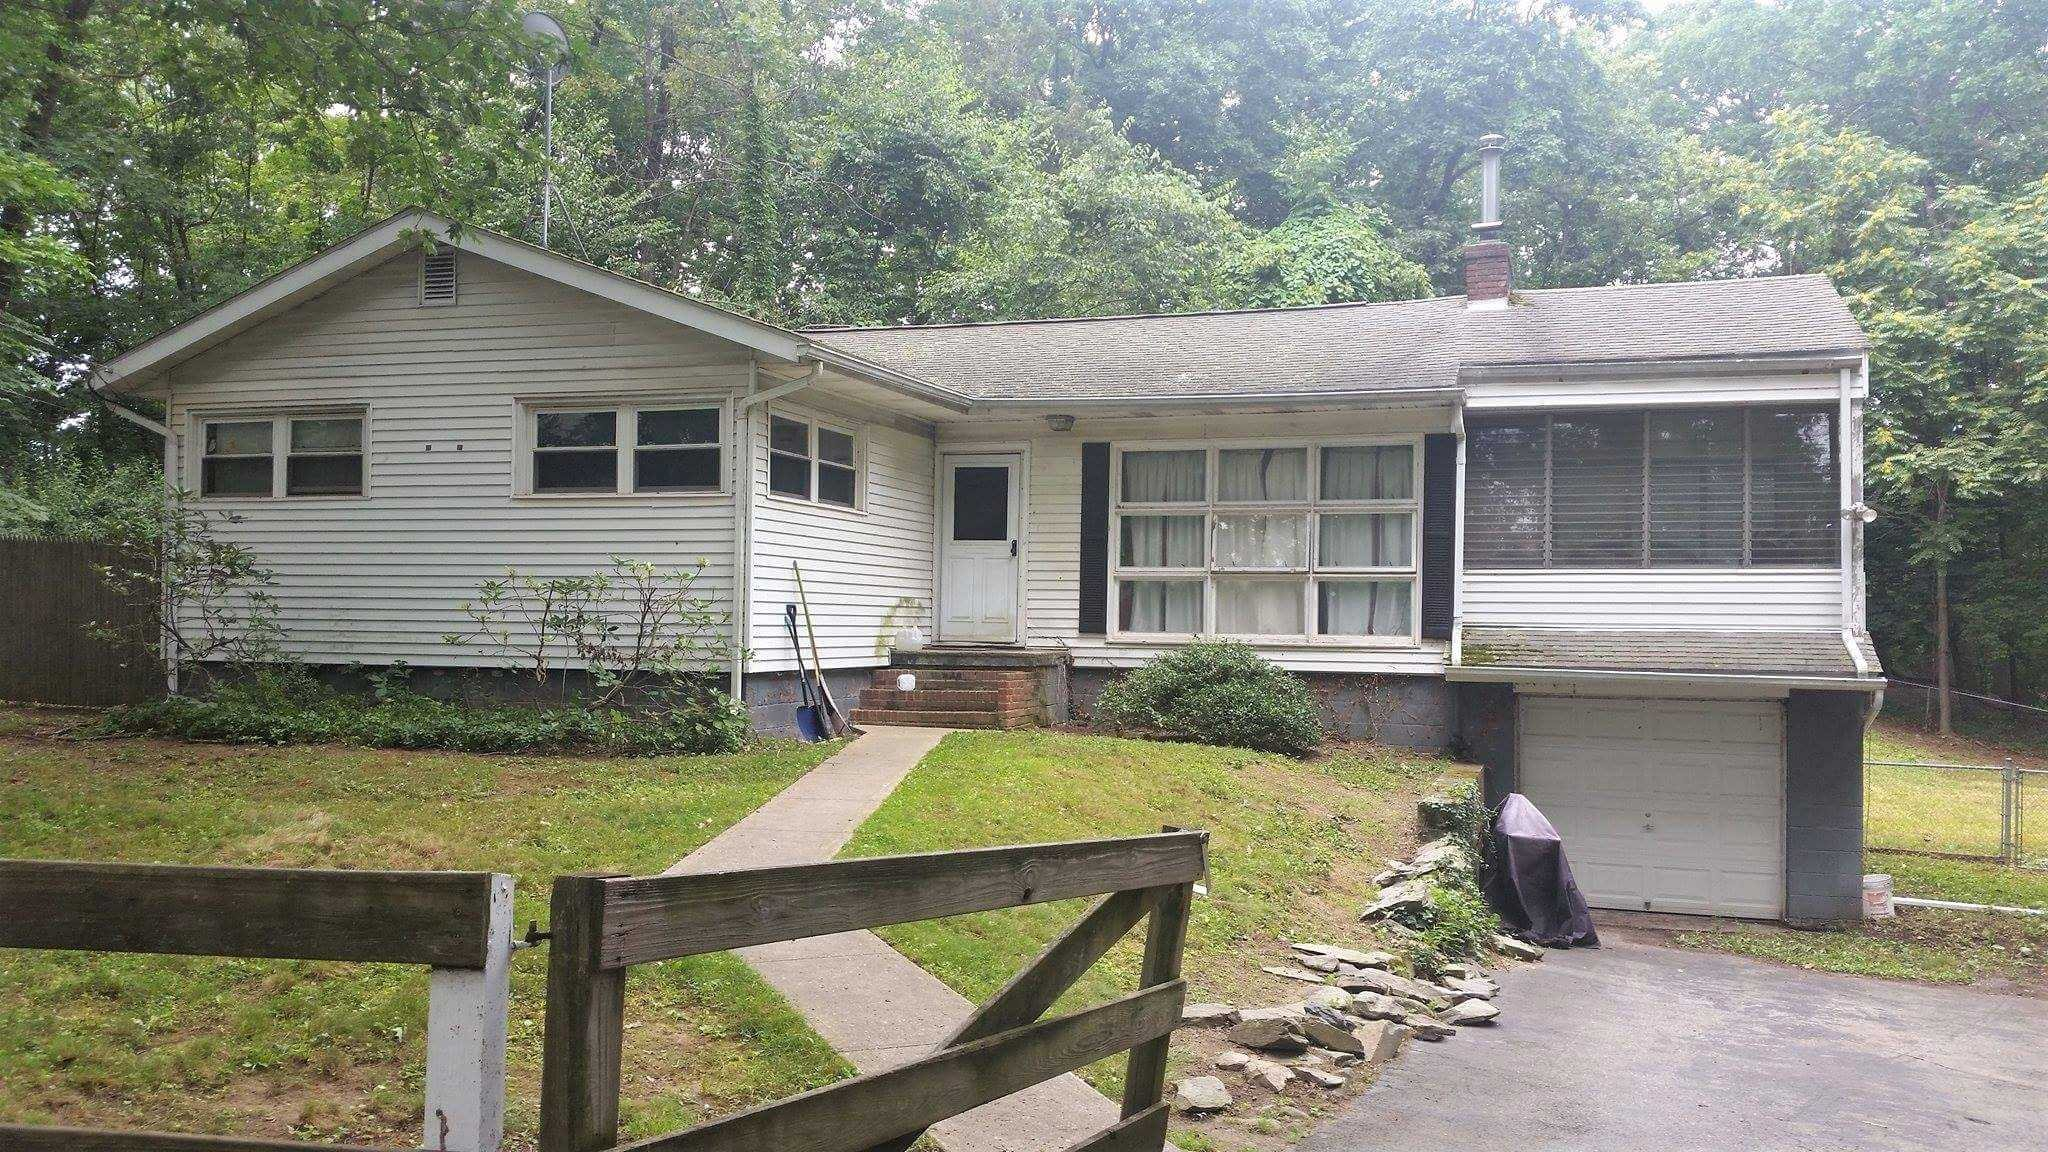 Single Family Home for Sale at 5 CARLYLE Road 5 CARLYLE Road Hyde Park, New York 12538 United States